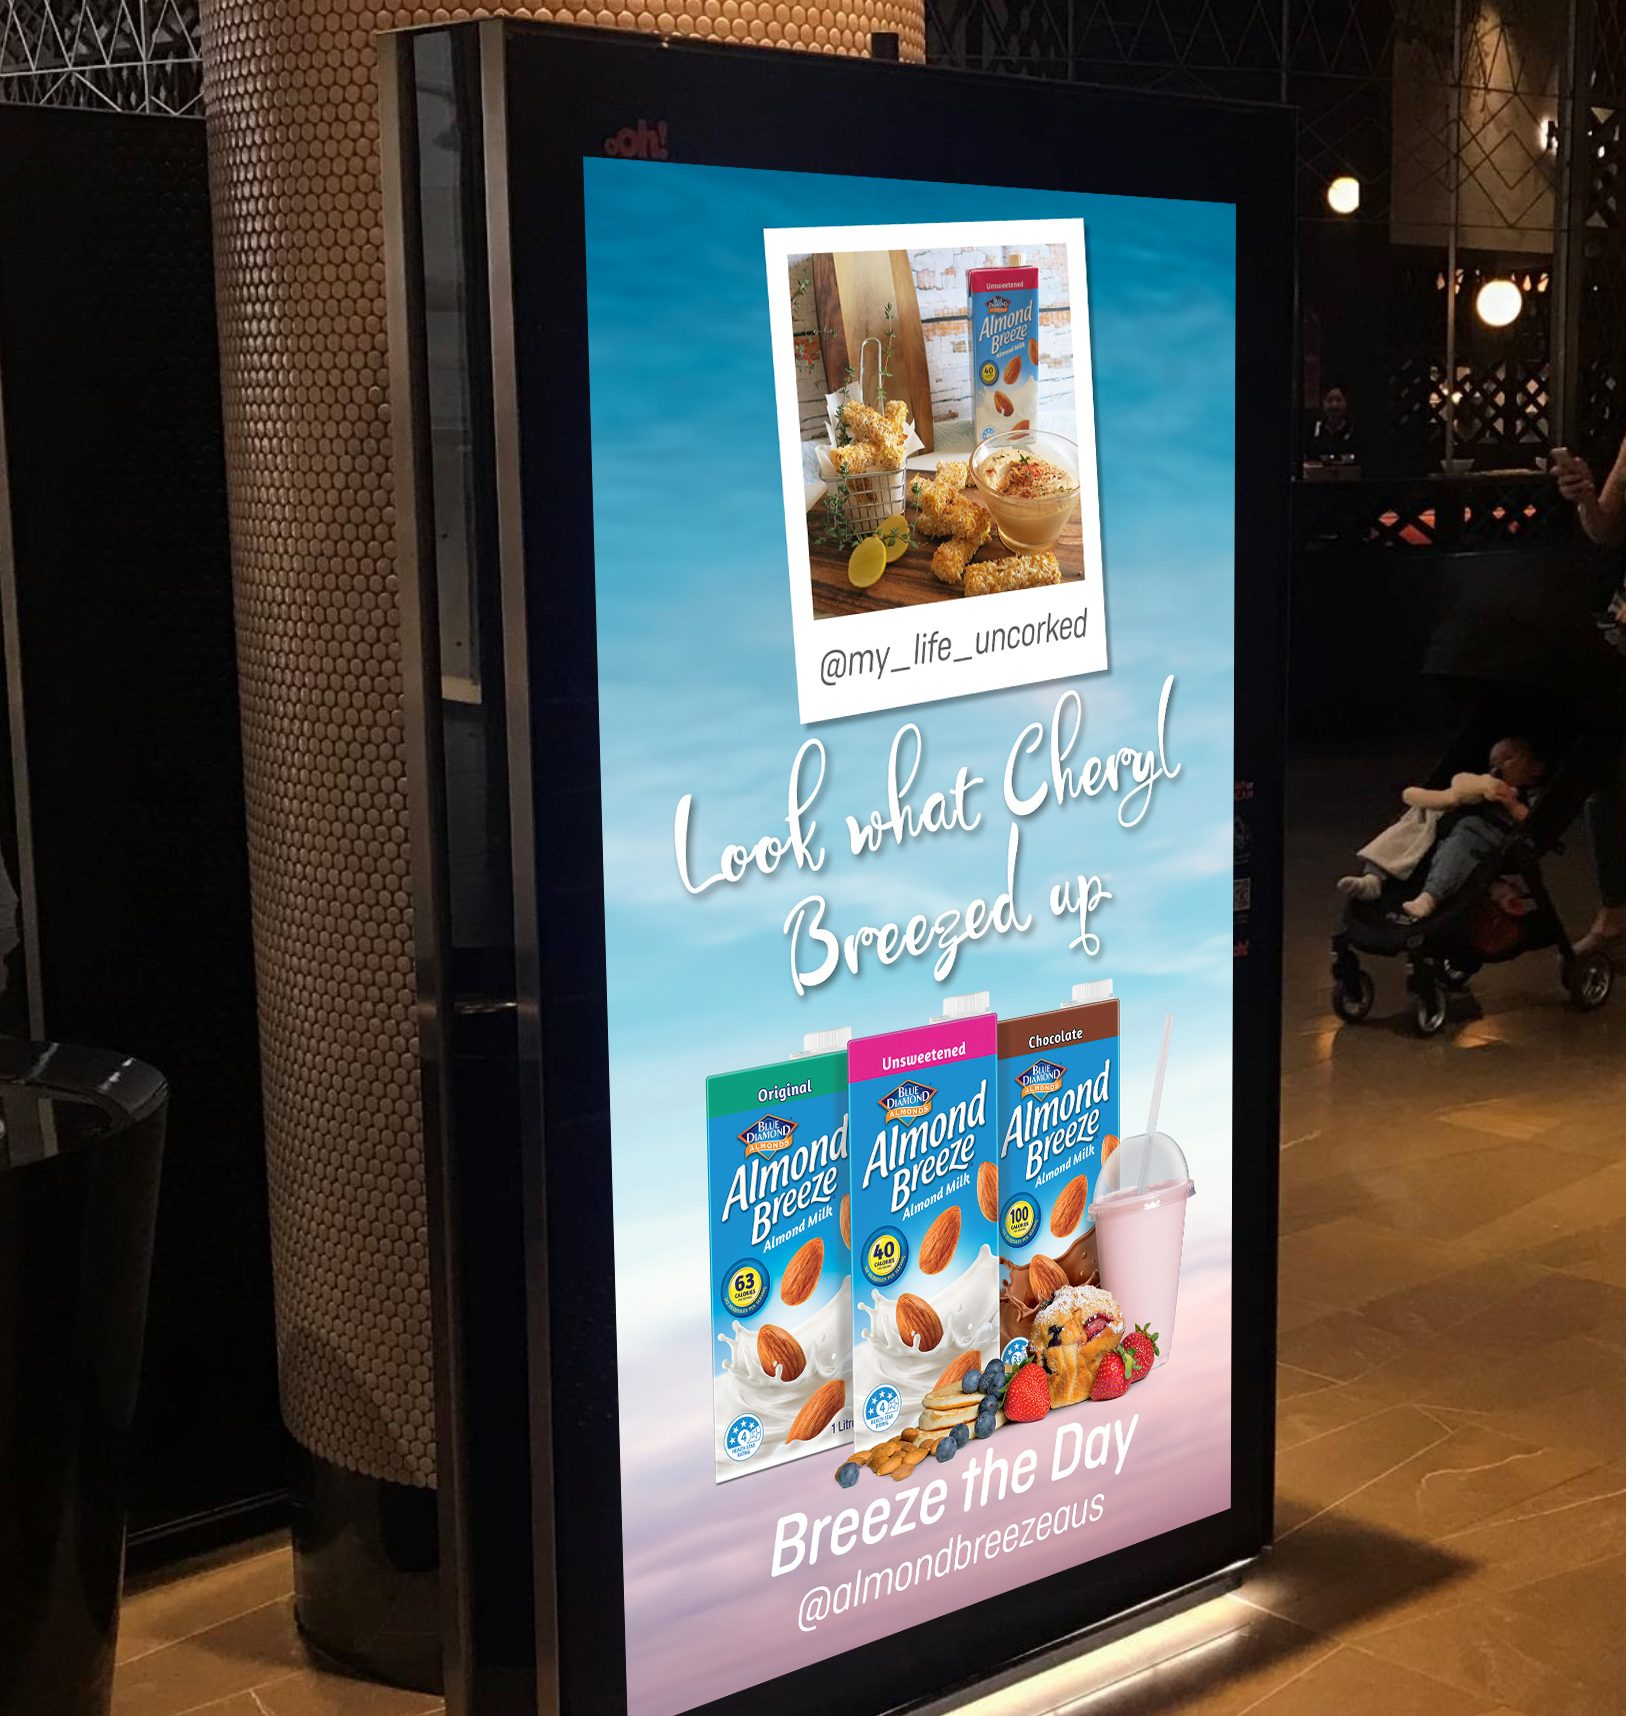 Almond Breeze Showcases Tastiest User-generated Content In Ooh Campaign Via Daylight Agency photo